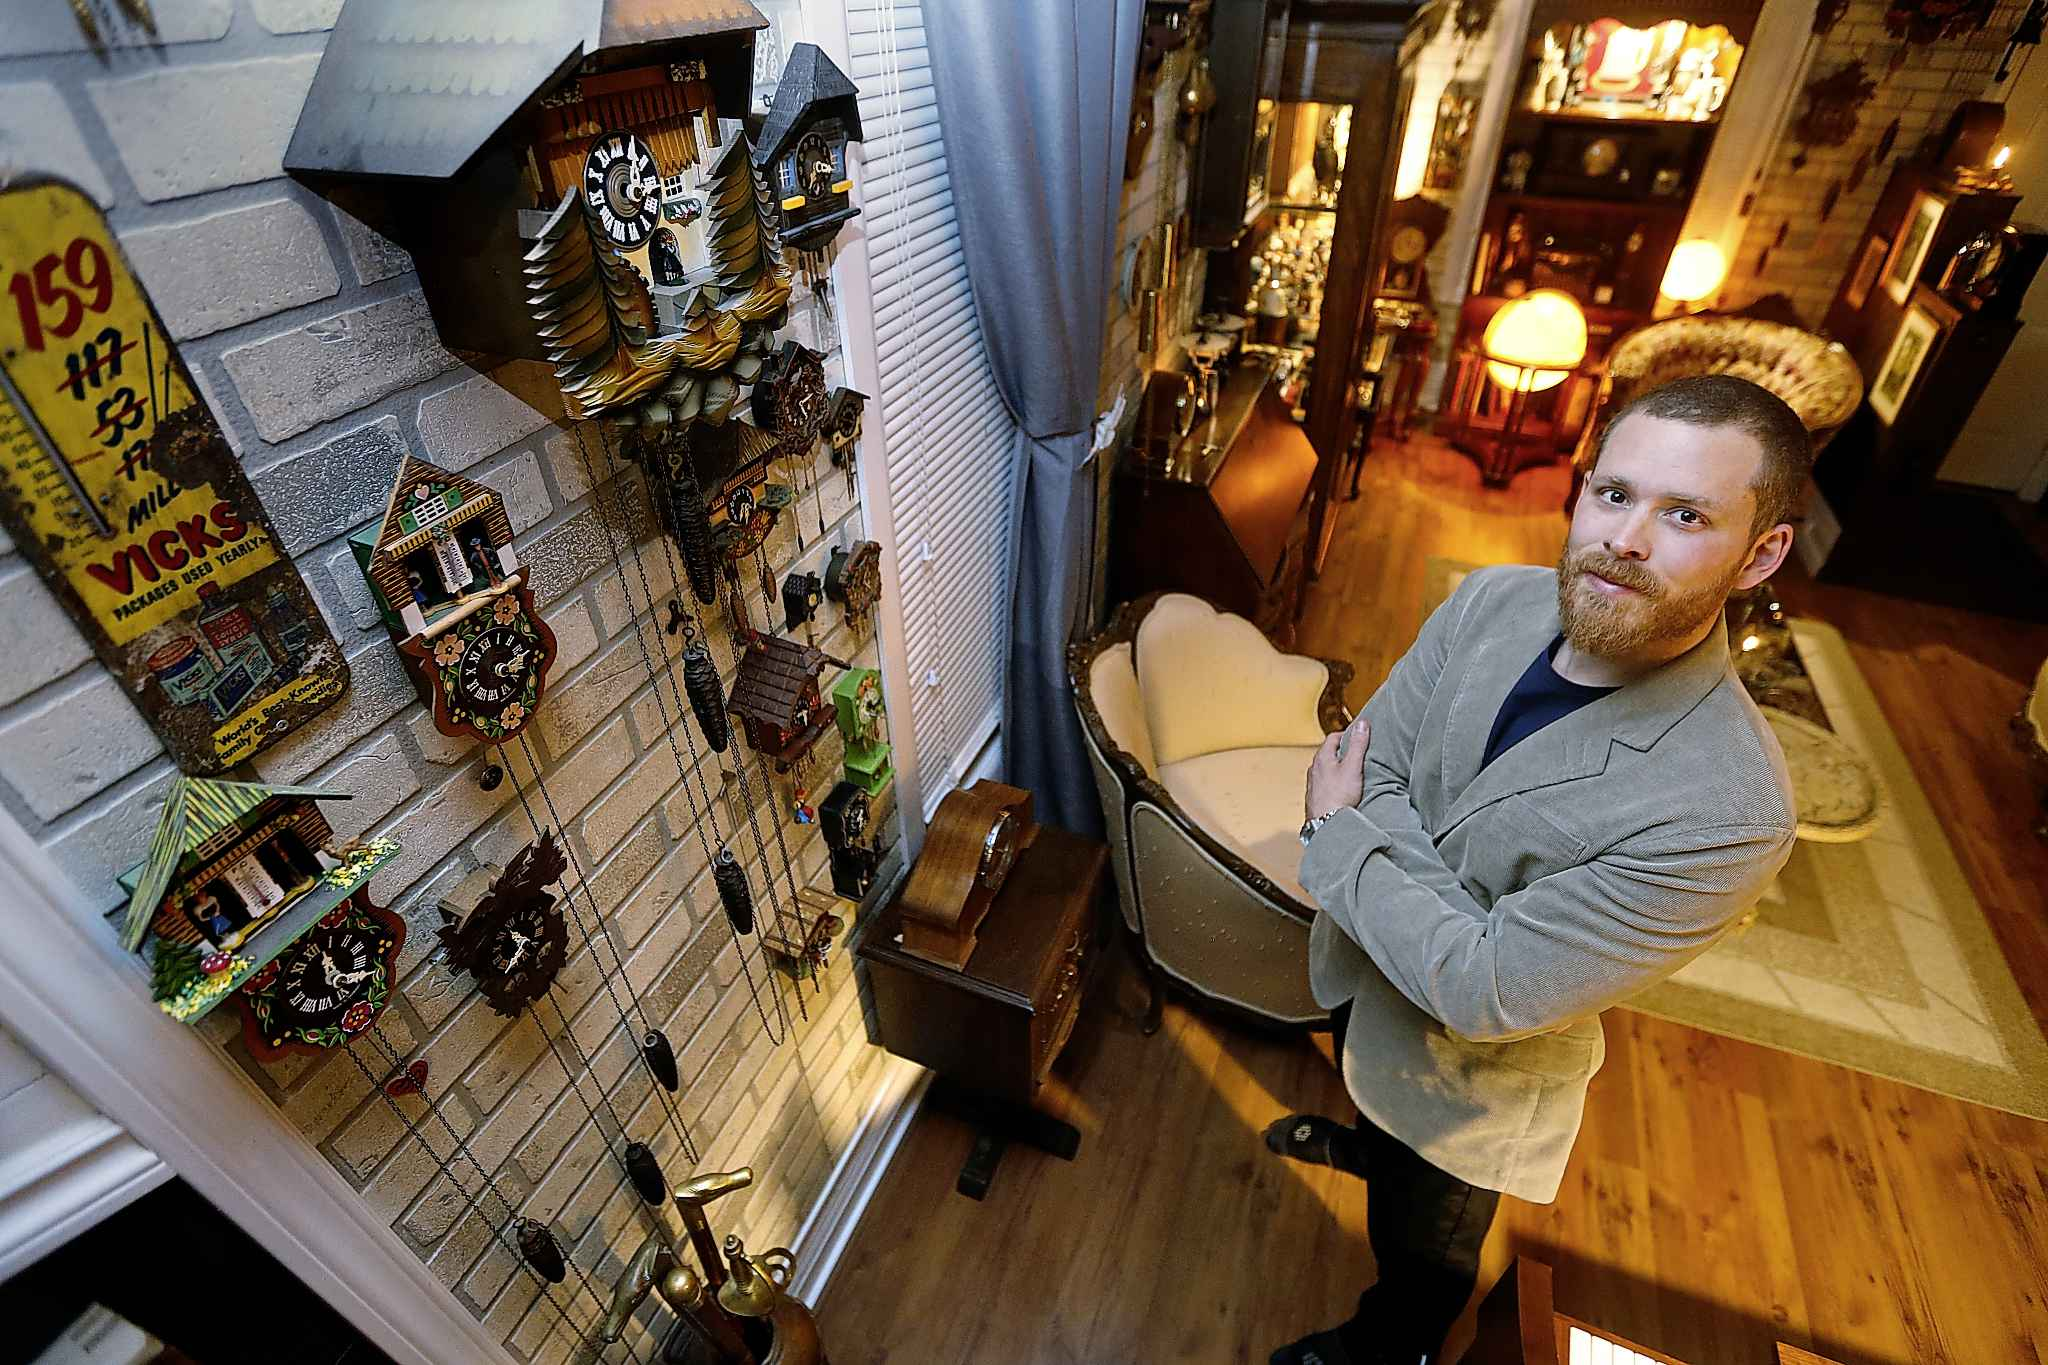 Covering almost every square inch of wall space in Beilby's living room are dozens and dozens of hand-carved cuckoo clocks.